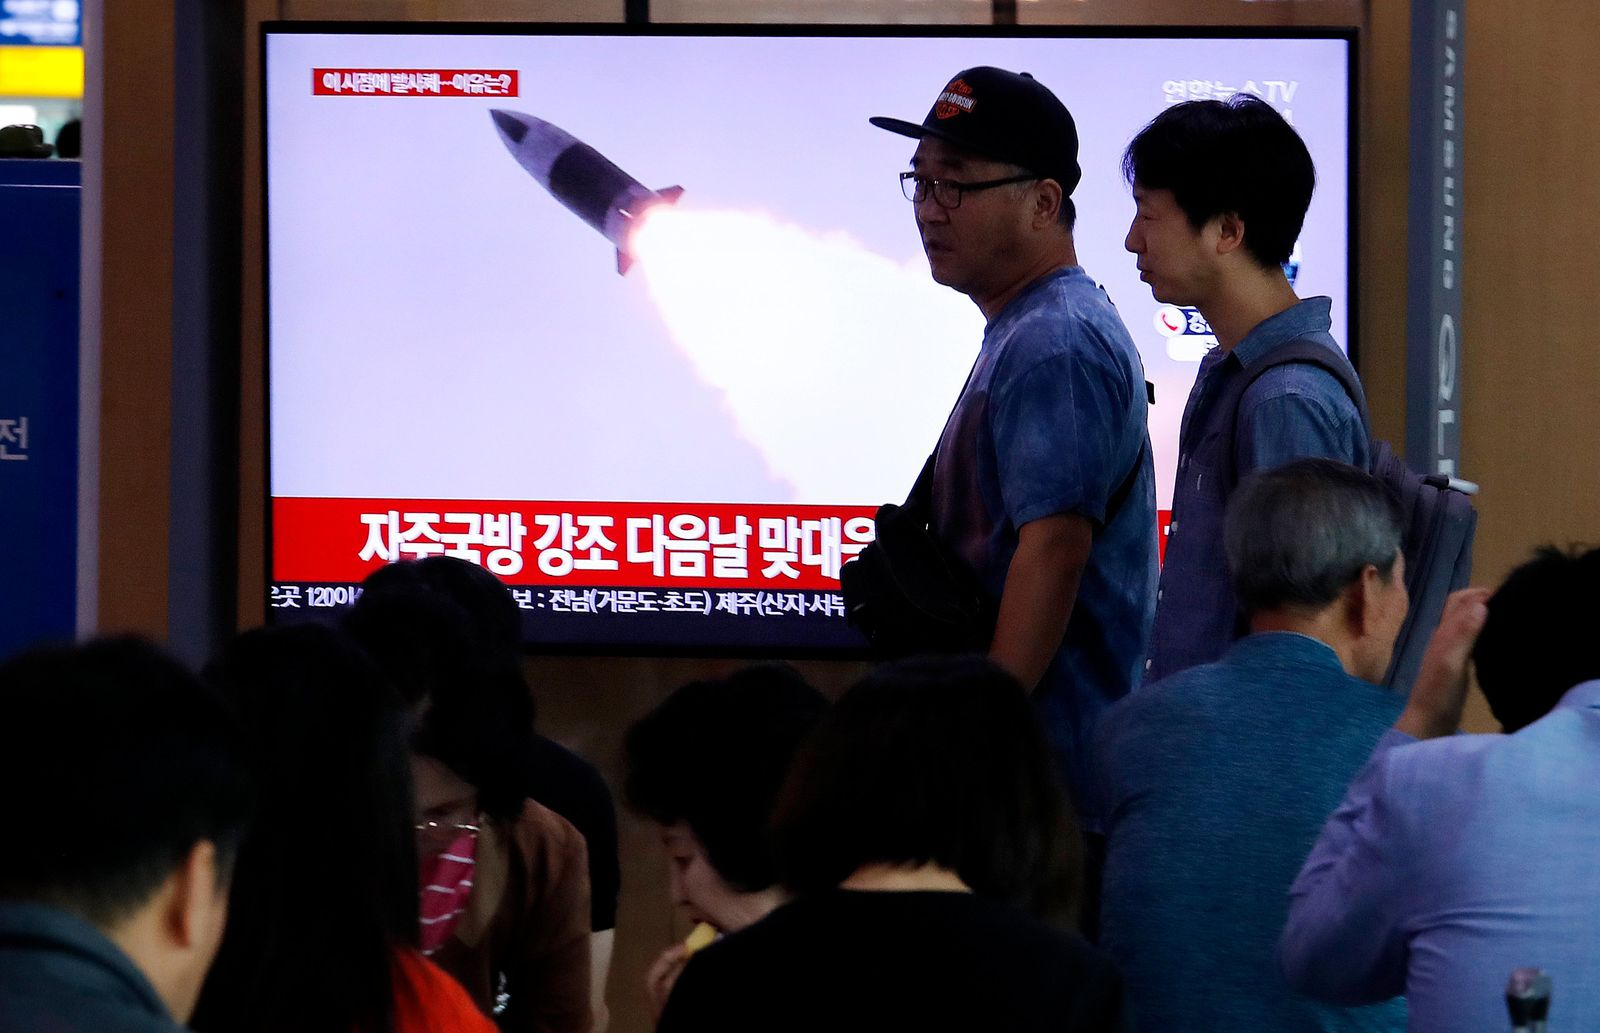 "People pass by a TV showing a file image of North Korea's missile launch during a news program at the Seoul Railway Station in Seoul, South Korea, Wednesday, Oct. 2, 2019. North Korea on Wednesday fired projectiles toward its eastern sea, South Korea's military said, in an apparent display of its expanding military capabilities ahead of planned nuclear negotiations with the United States this weekend. The sign reads: ""North Korea launched an unspecified missile."" (AP Photo/Ahn Young-joon)"